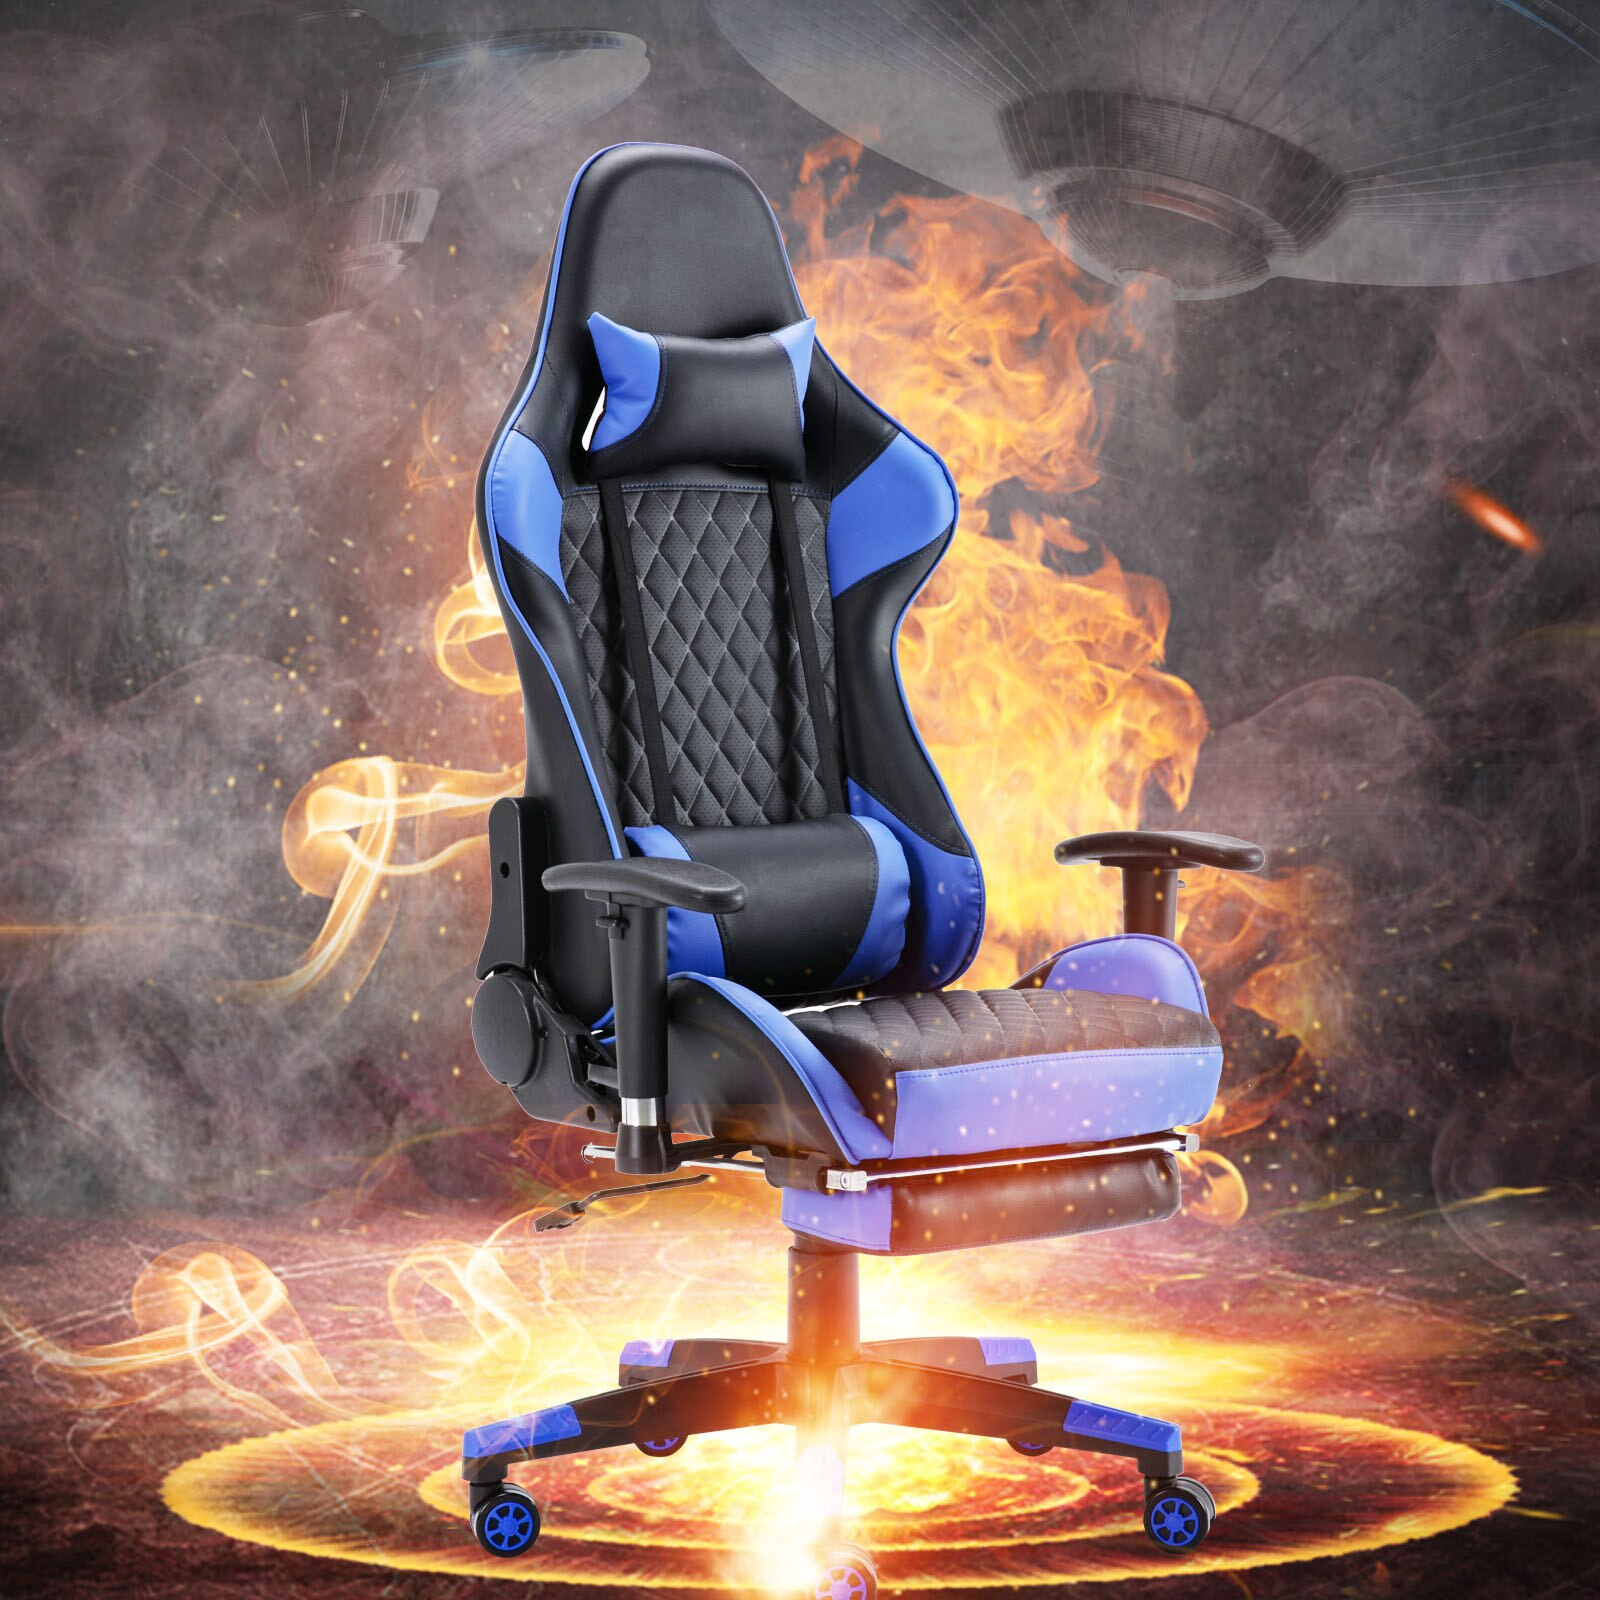 Hd8844659652c421a8b0f0da1b5292f640 - Gaming Chair Computer Armchair Adjustable Armrest And Footrest PVC Household Office Chair Ergonomic Computer Gamer Chair